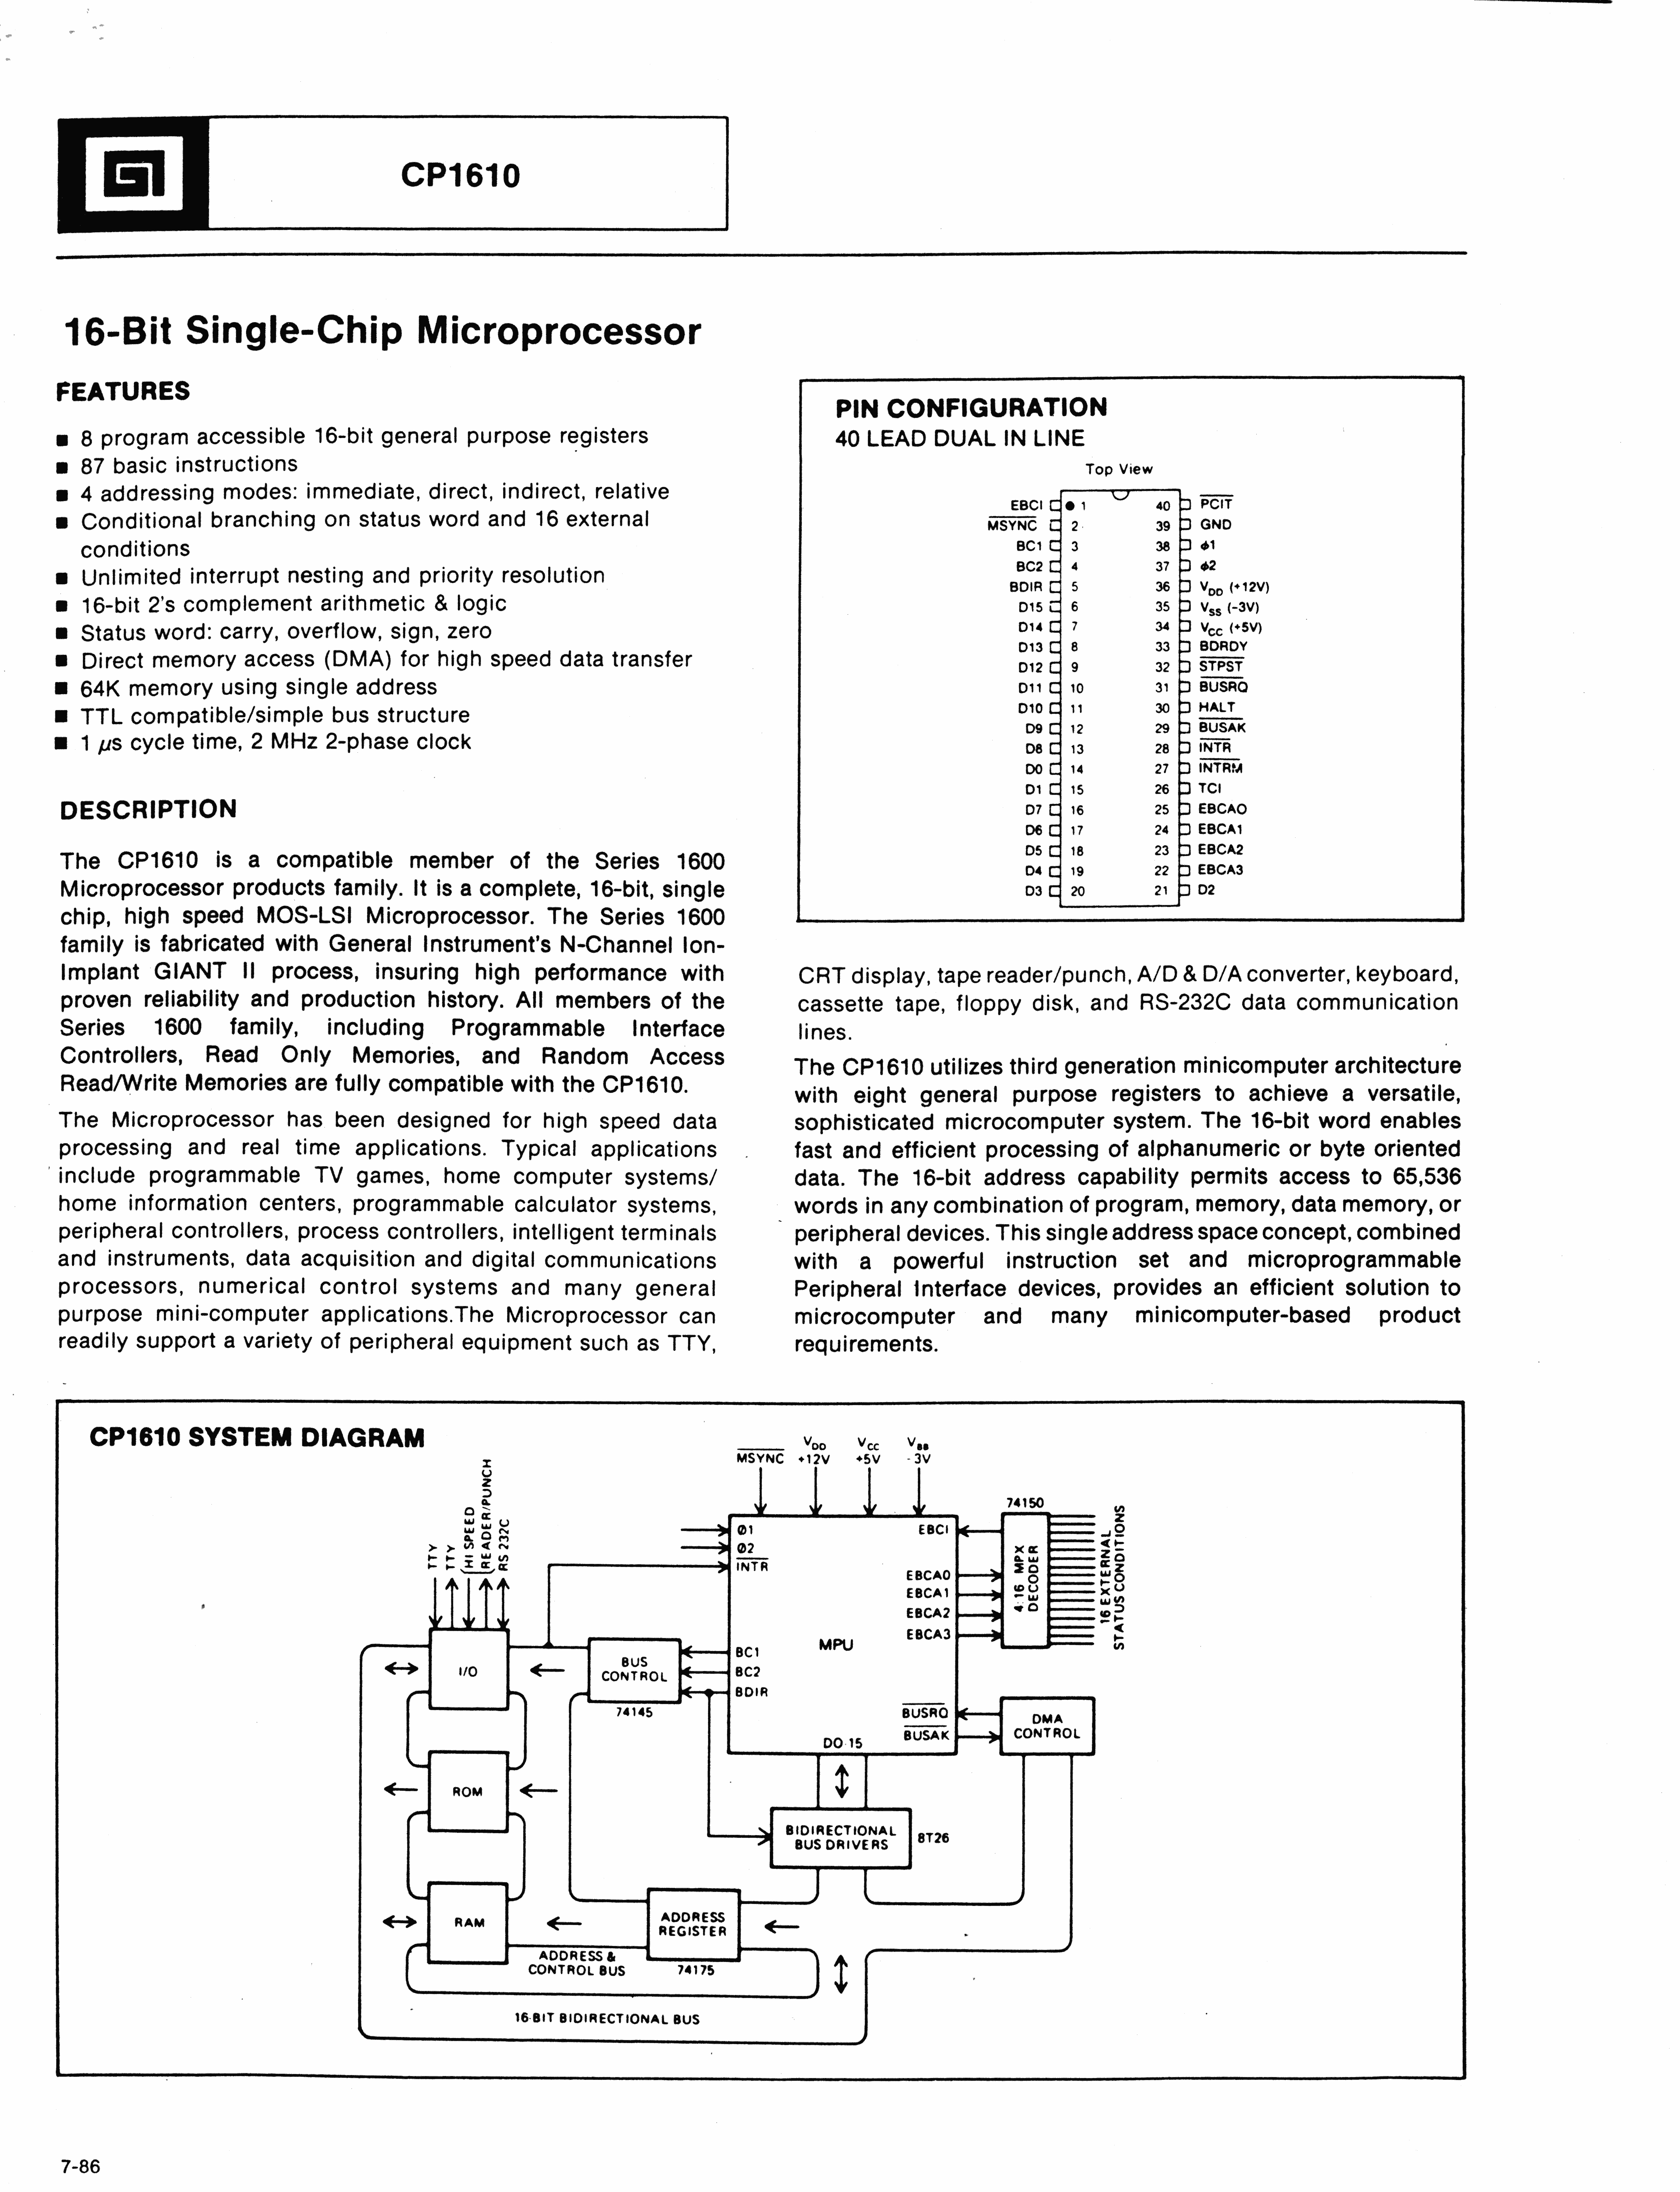 Index Of Im14u2c Intv Gi Micro Programmable Tv Games Logic Diagram Word 2010 Page 7 086 05 23 2118